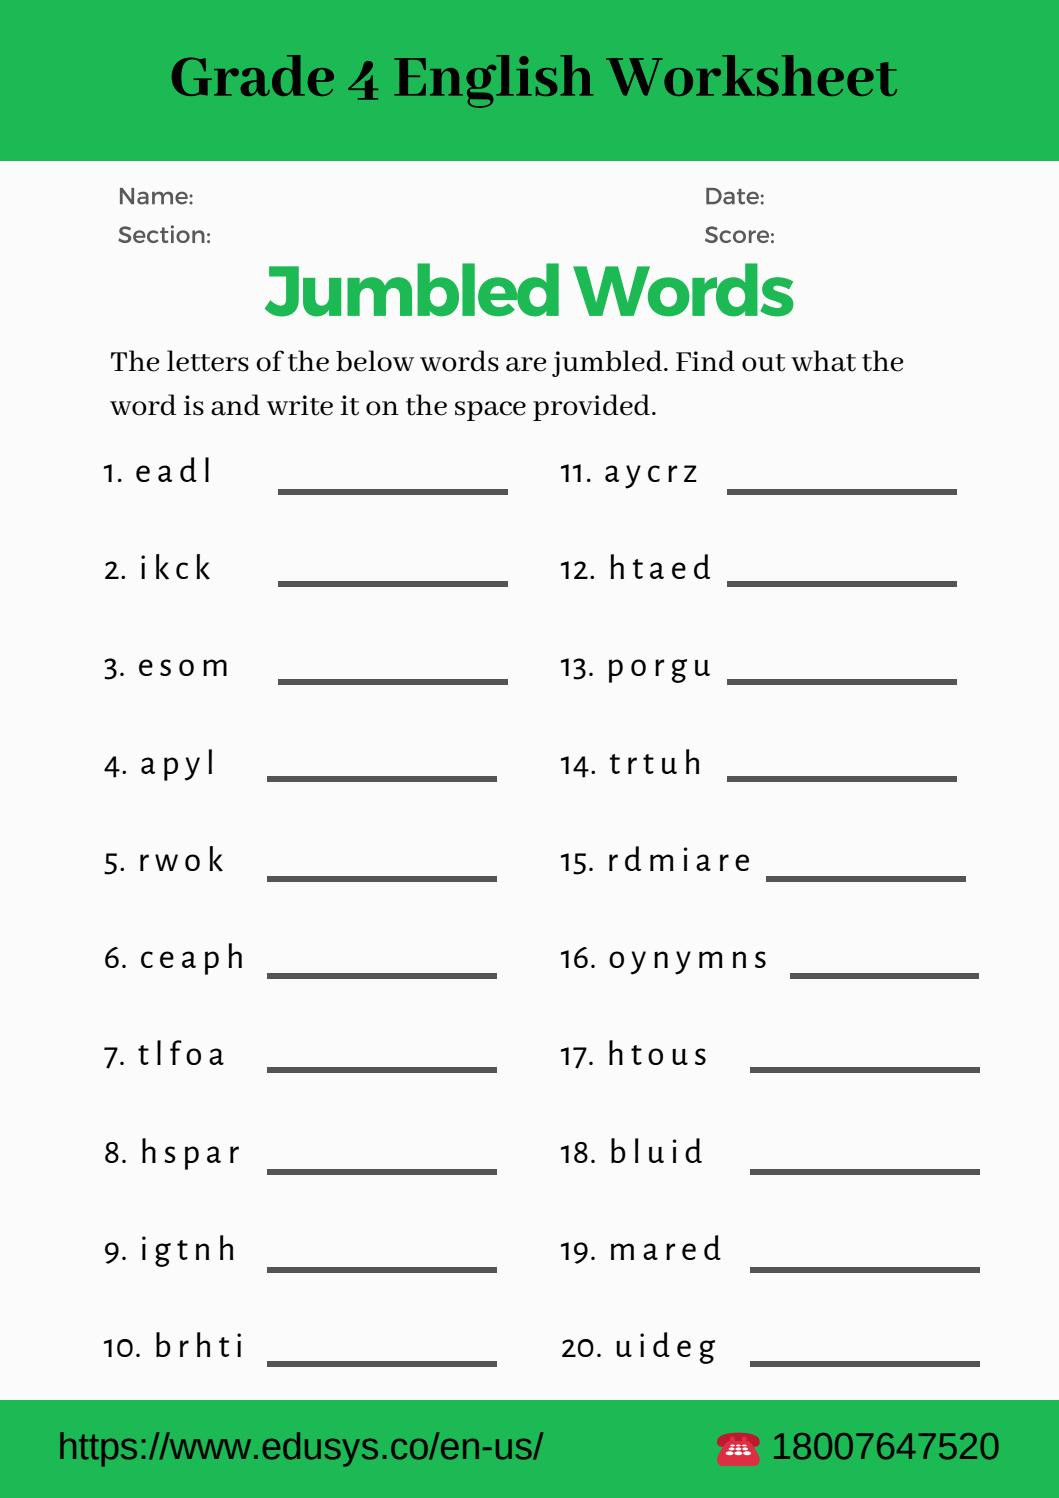 8th Grade Vocabulary Worksheets Pdf 4th Grade English Vocabulary Worksheet Pdf by Nithya issuu